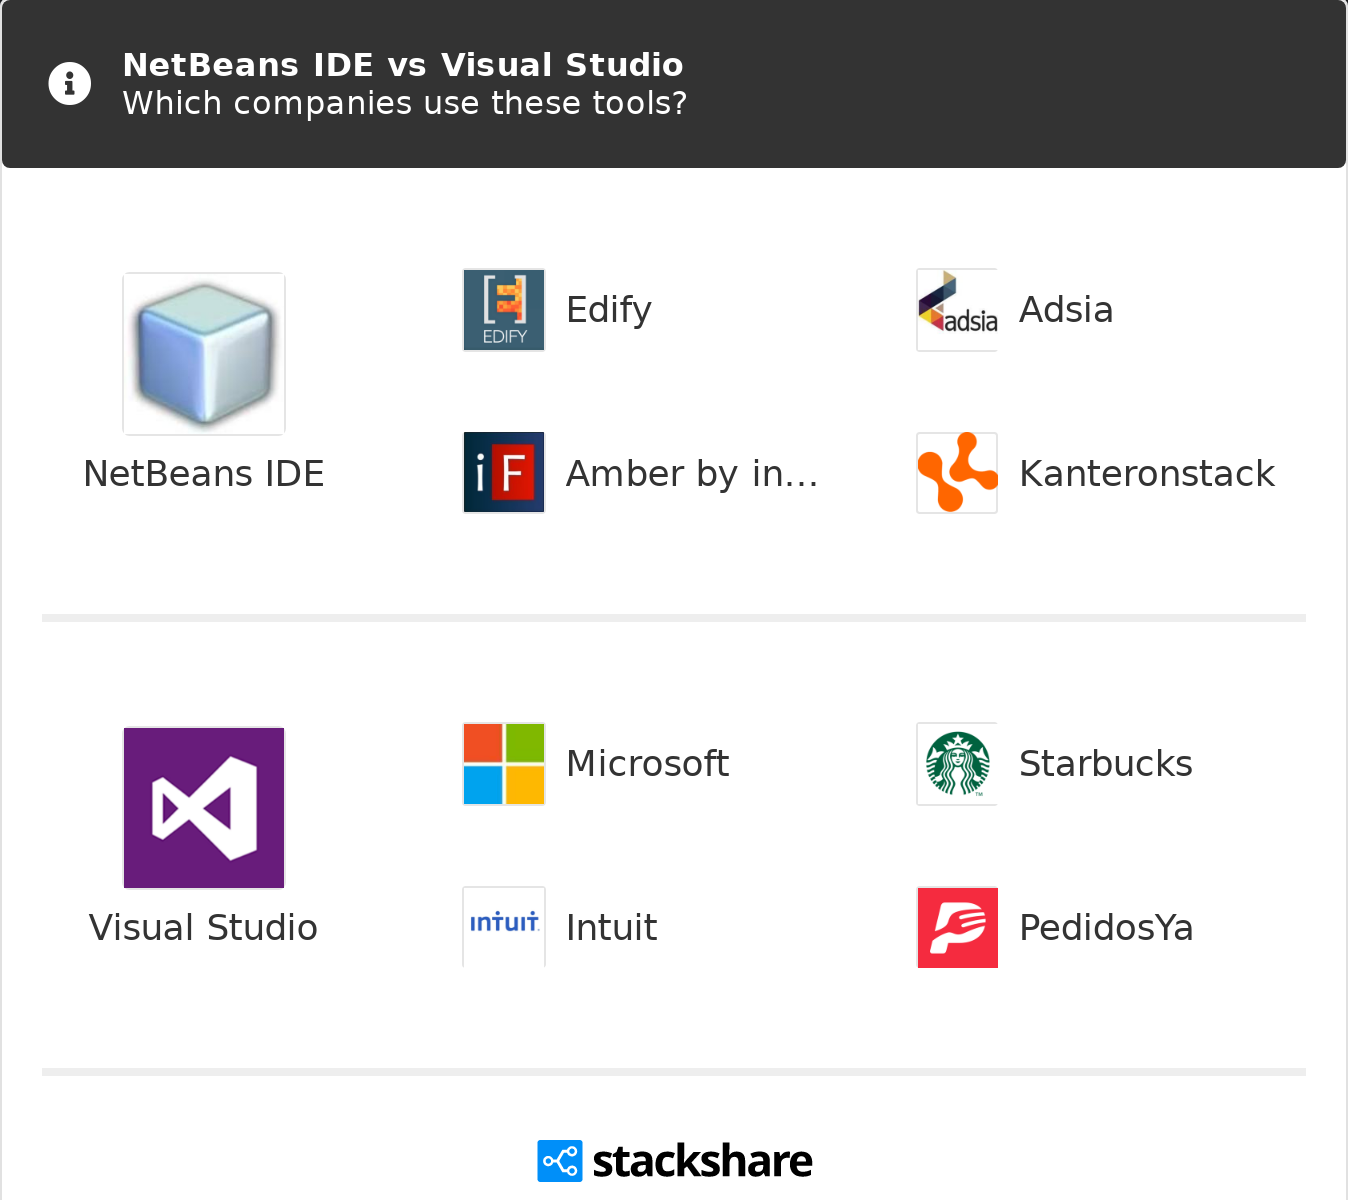 NetBeans IDE vs Visual Studio | What are the differences?